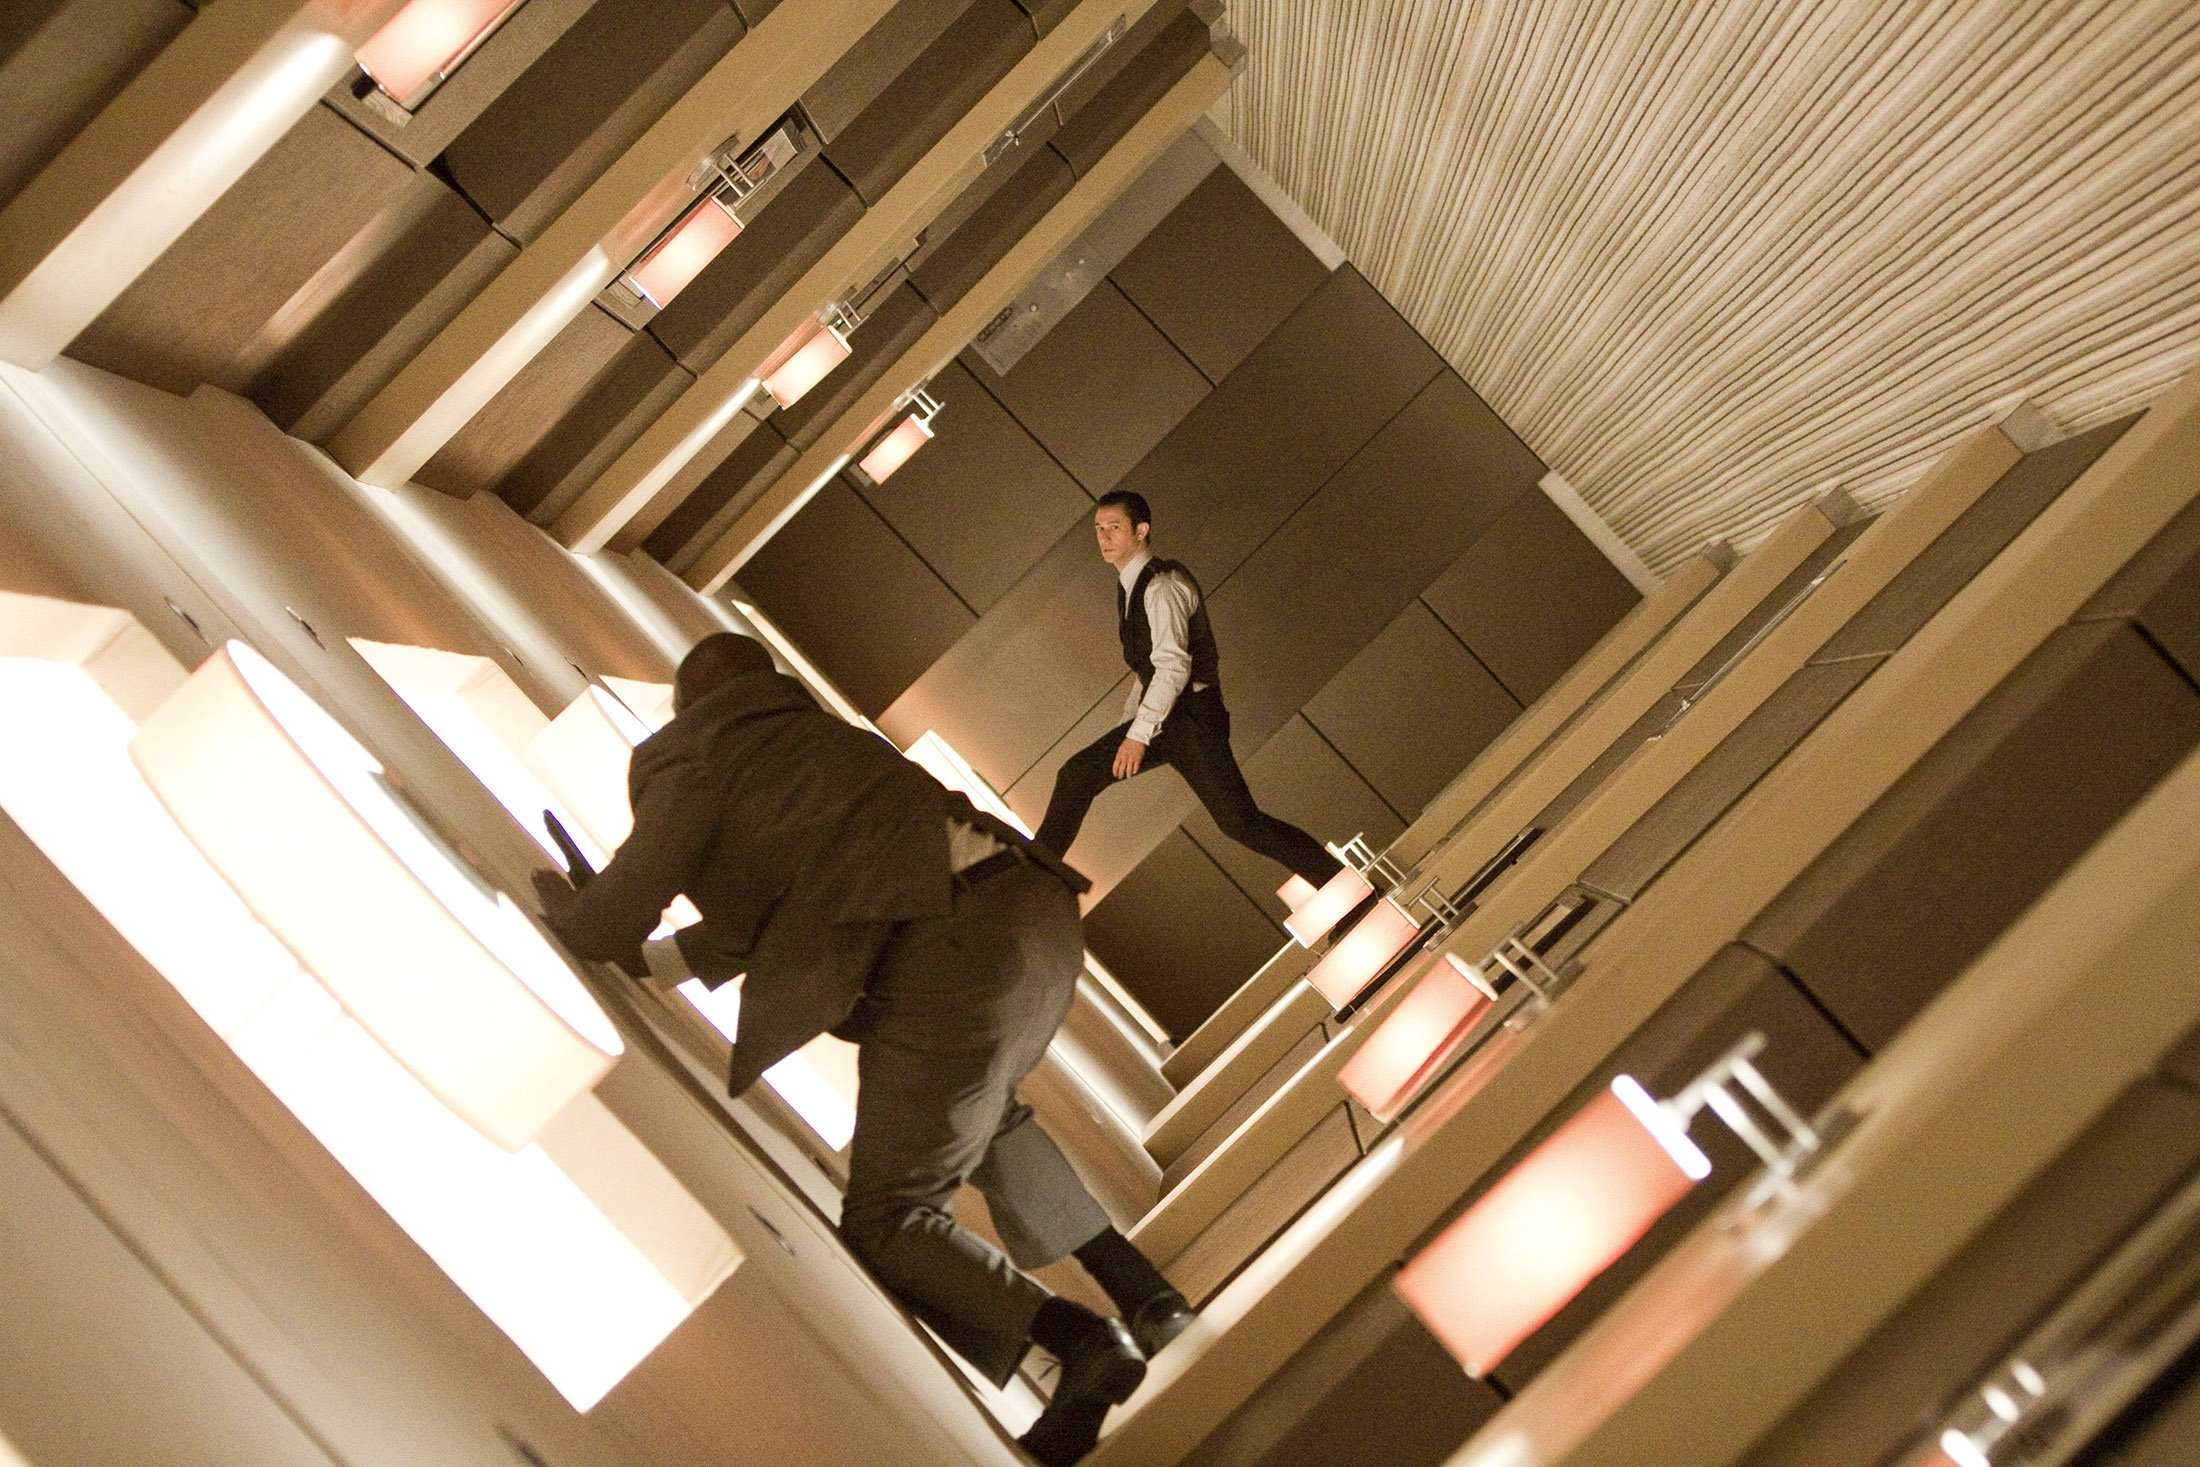 Joseph Gordon Levitt as Arthur in Warner Bros. Pictures' and Legendary Pictures' science fiction action film 'Inception.'